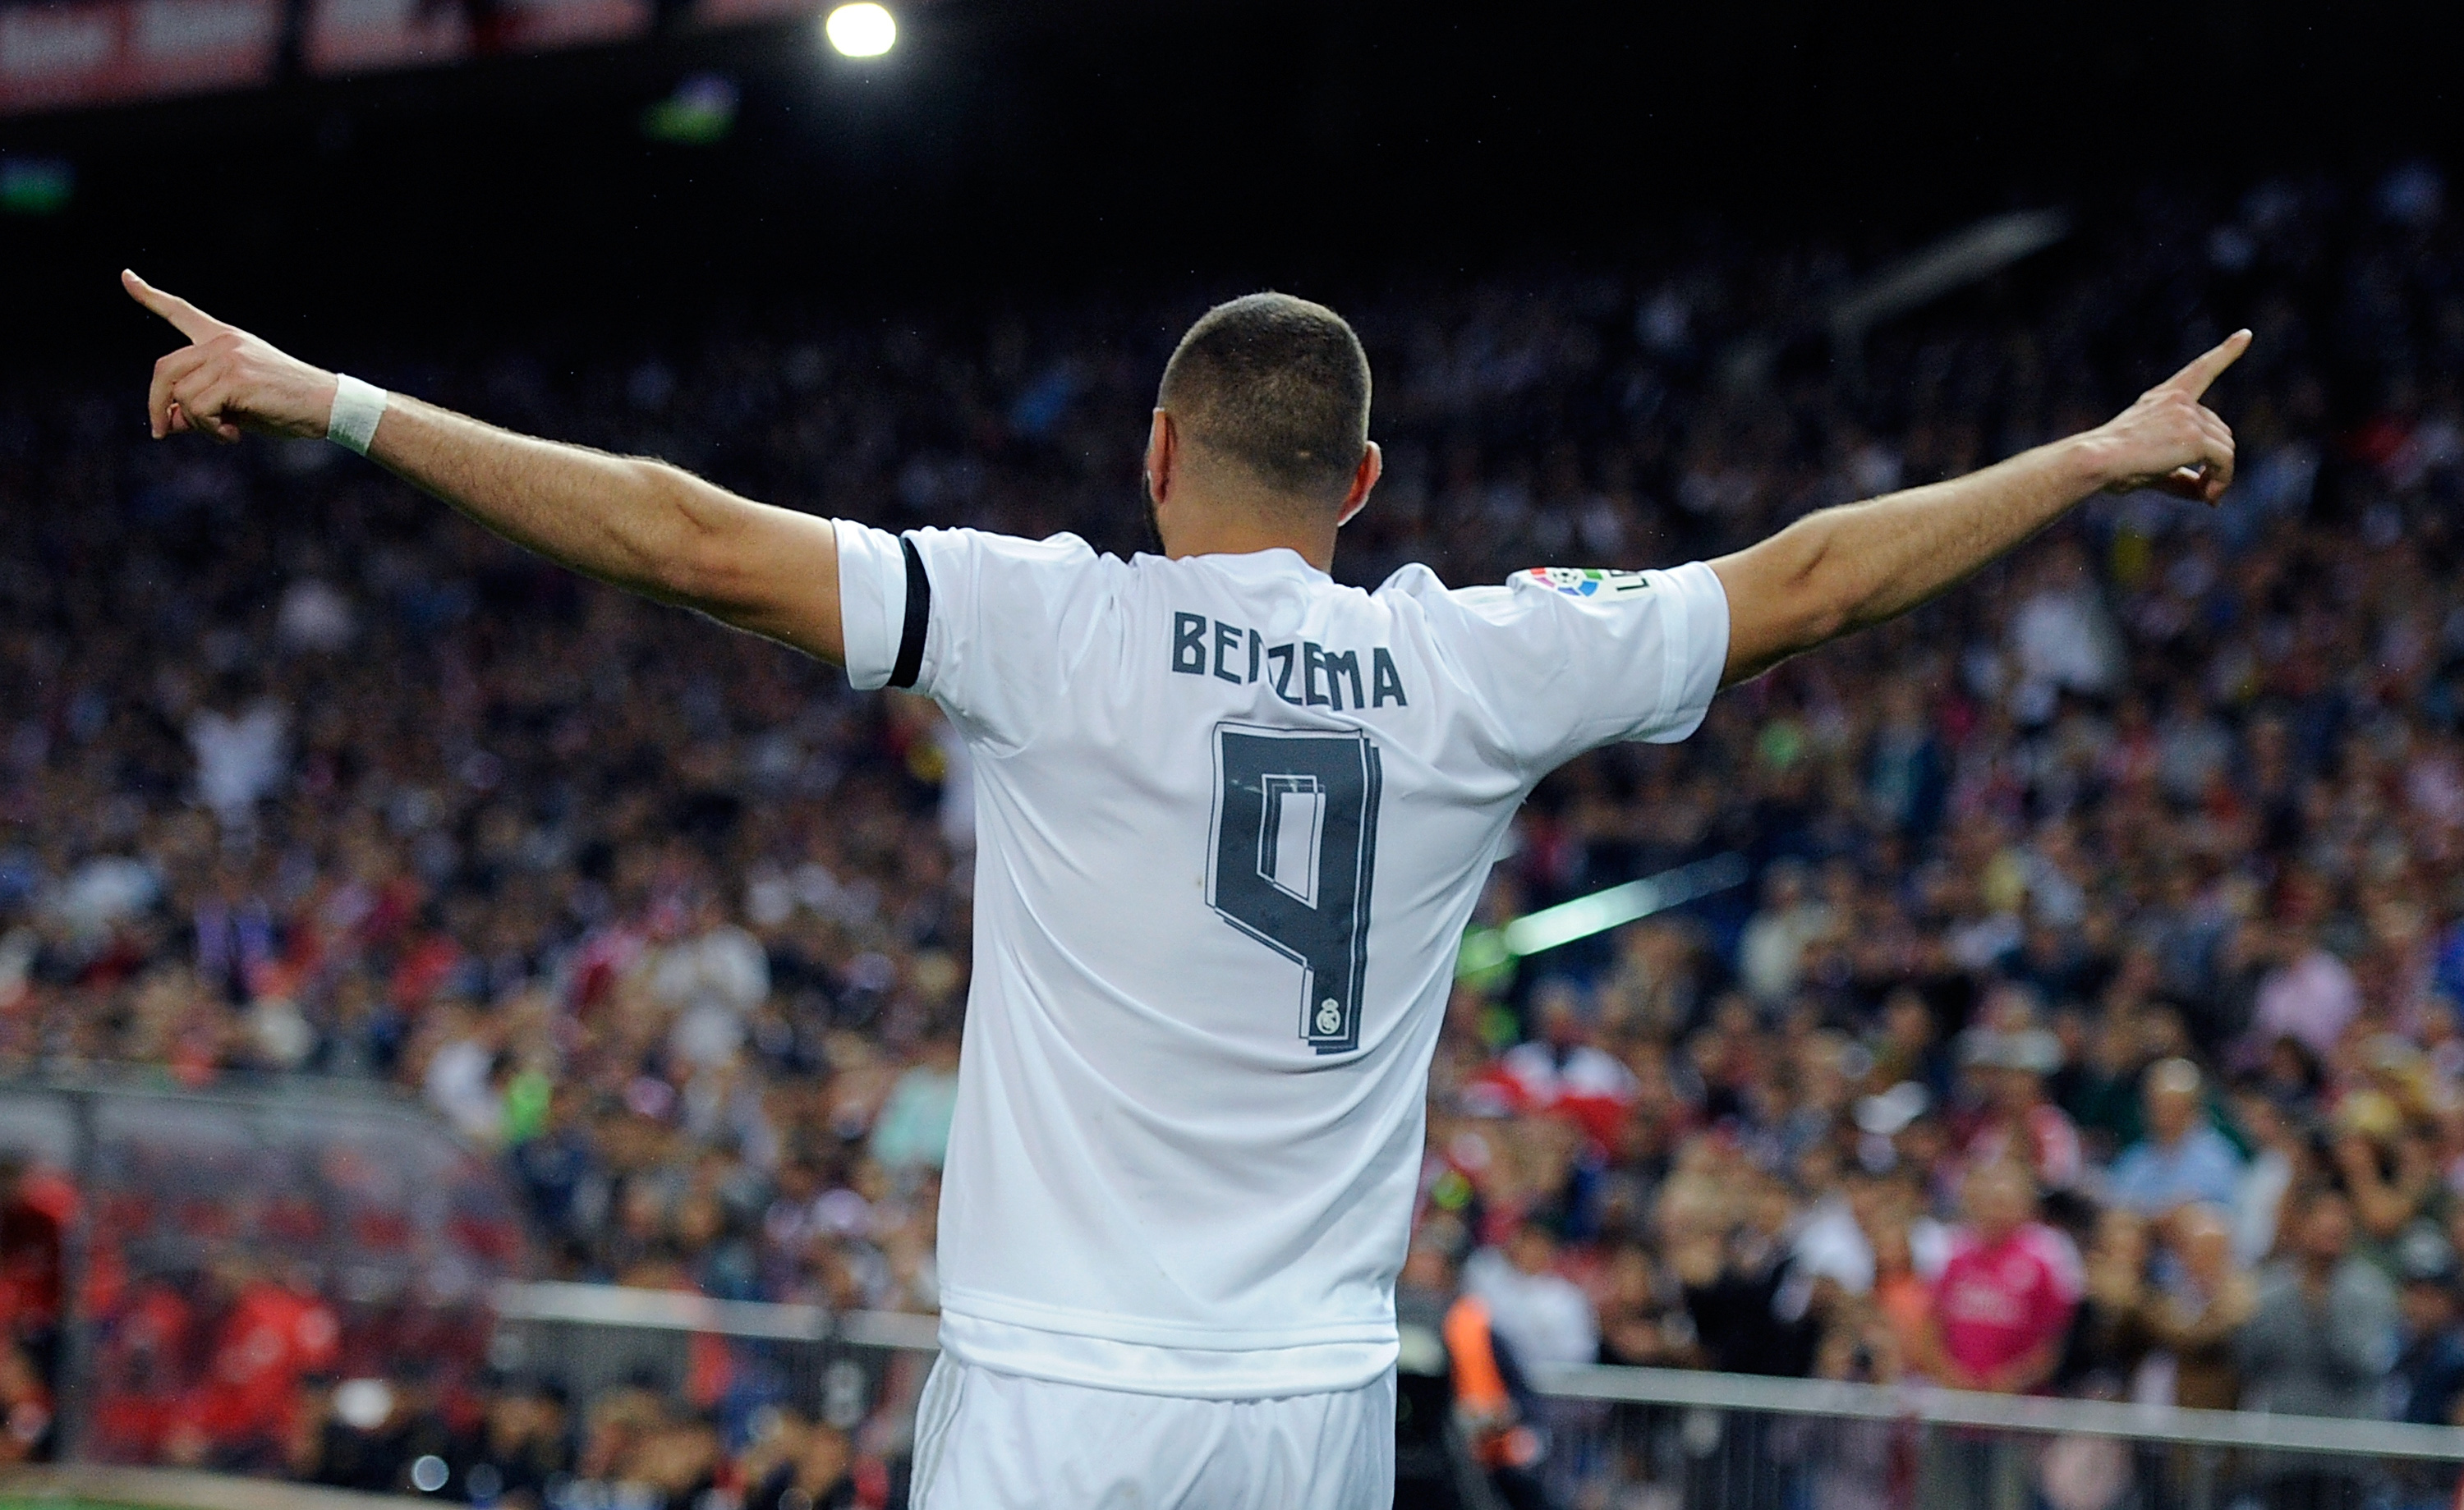 But there's more to Karim Benzema than on-field excellence.